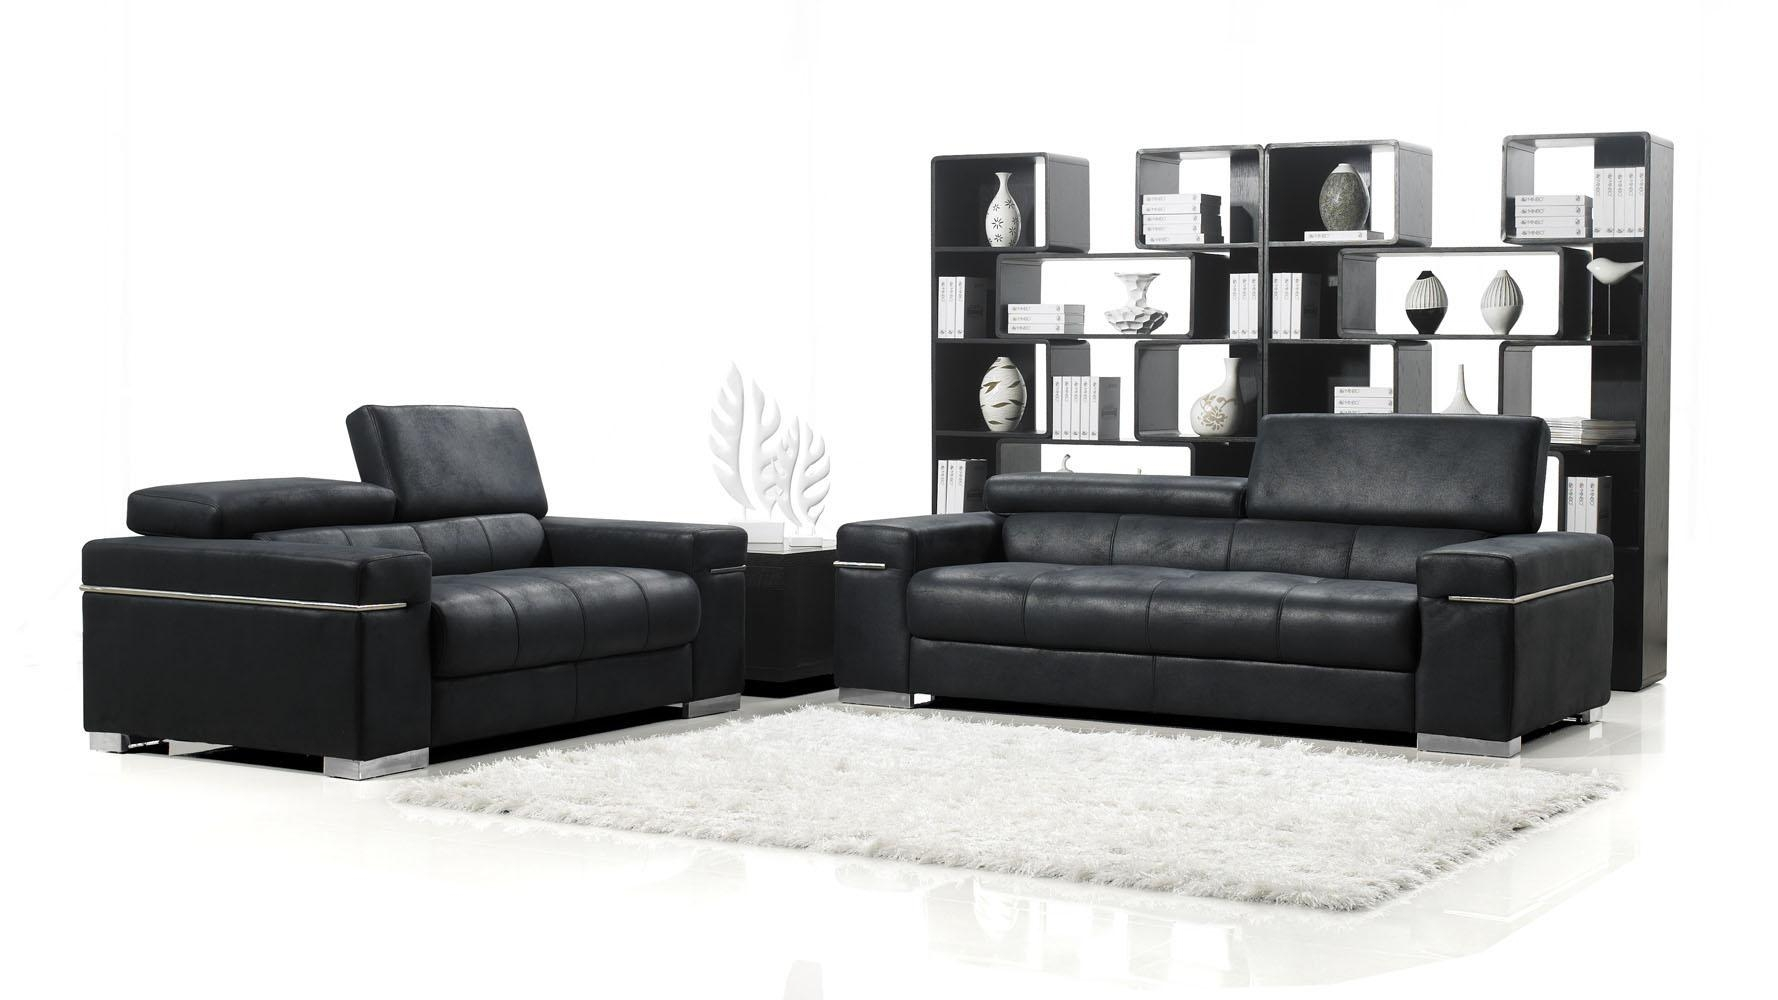 Products In Sofas | Sofa Sets, Seating, Living On Zuri Furniture In White Modern Sofas (Image 11 of 20)